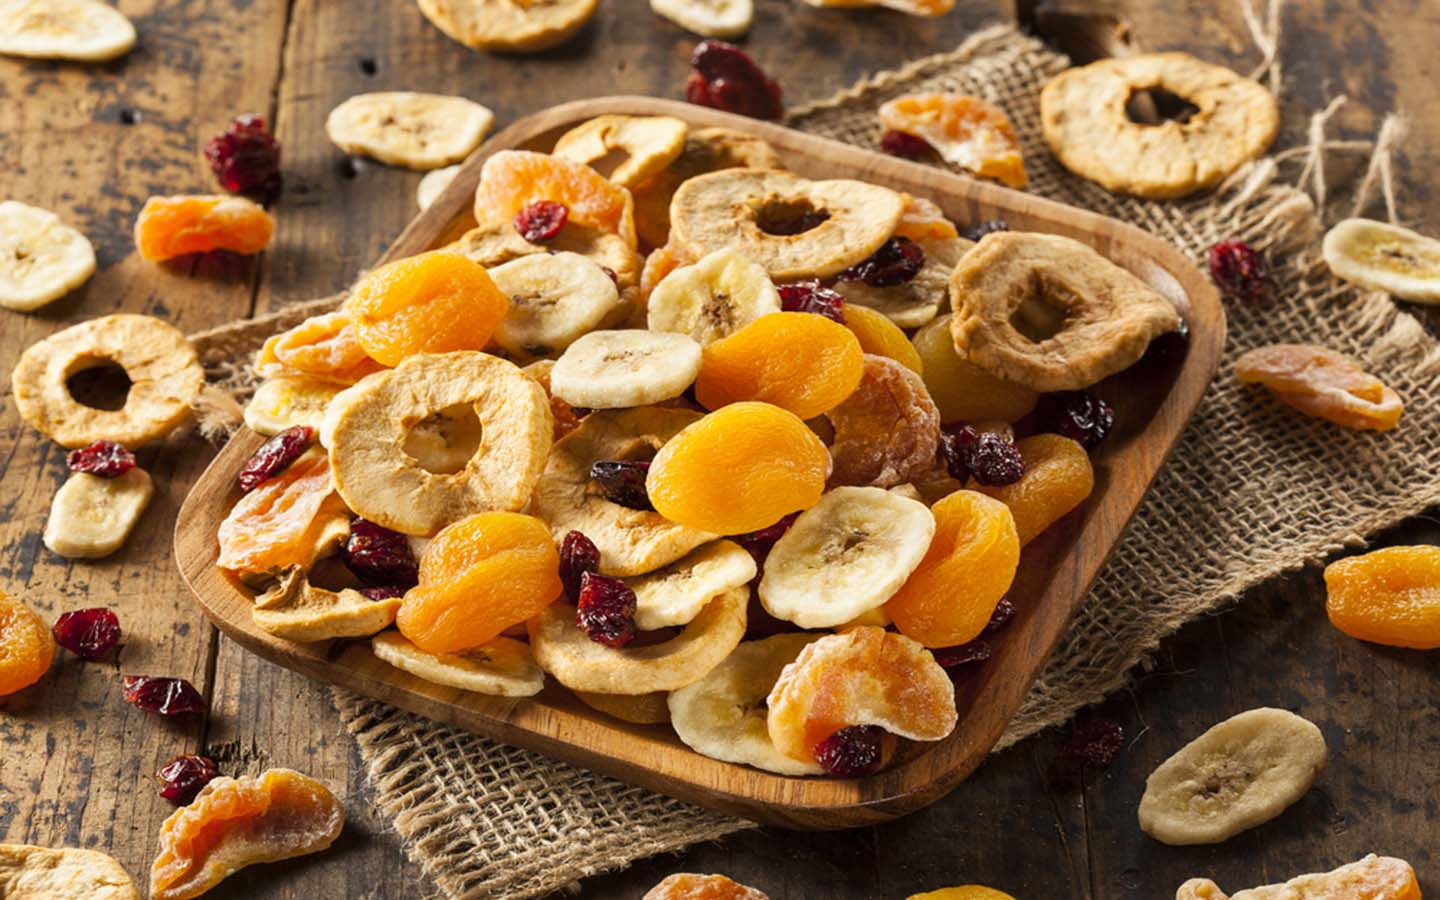 fresh and dry fruits